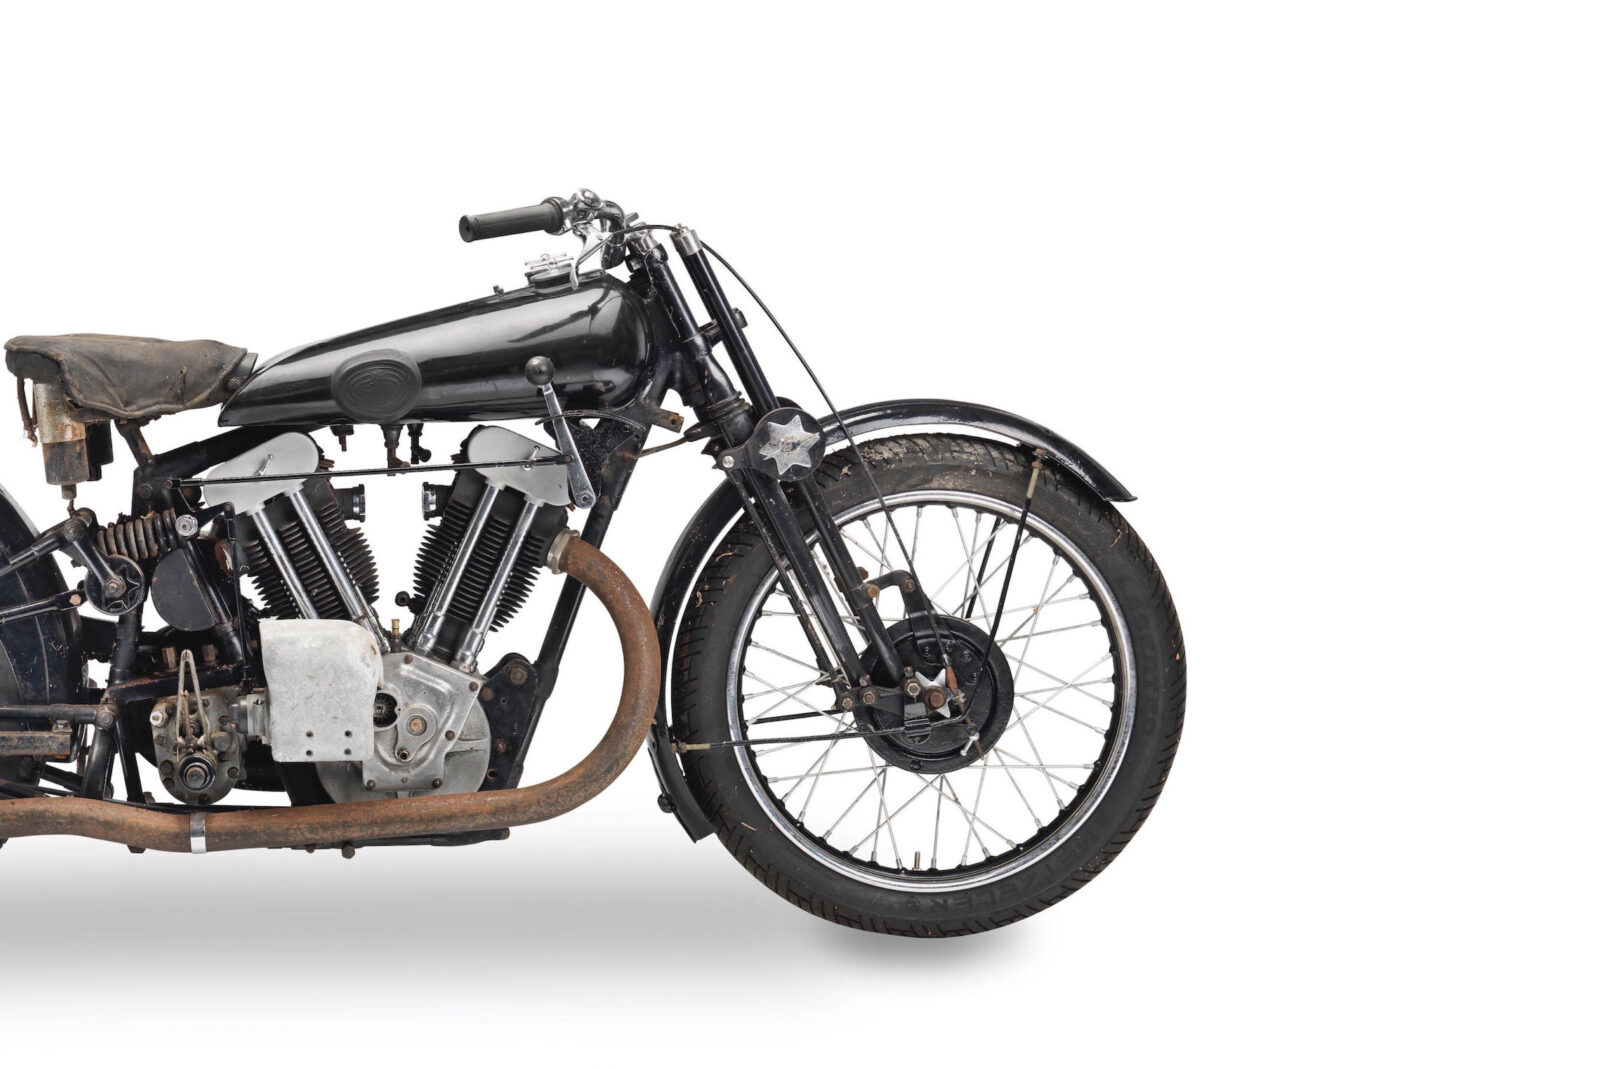 Mrs Knight's Brough Superior SS100 - A $200,000+ Project Motorcycle